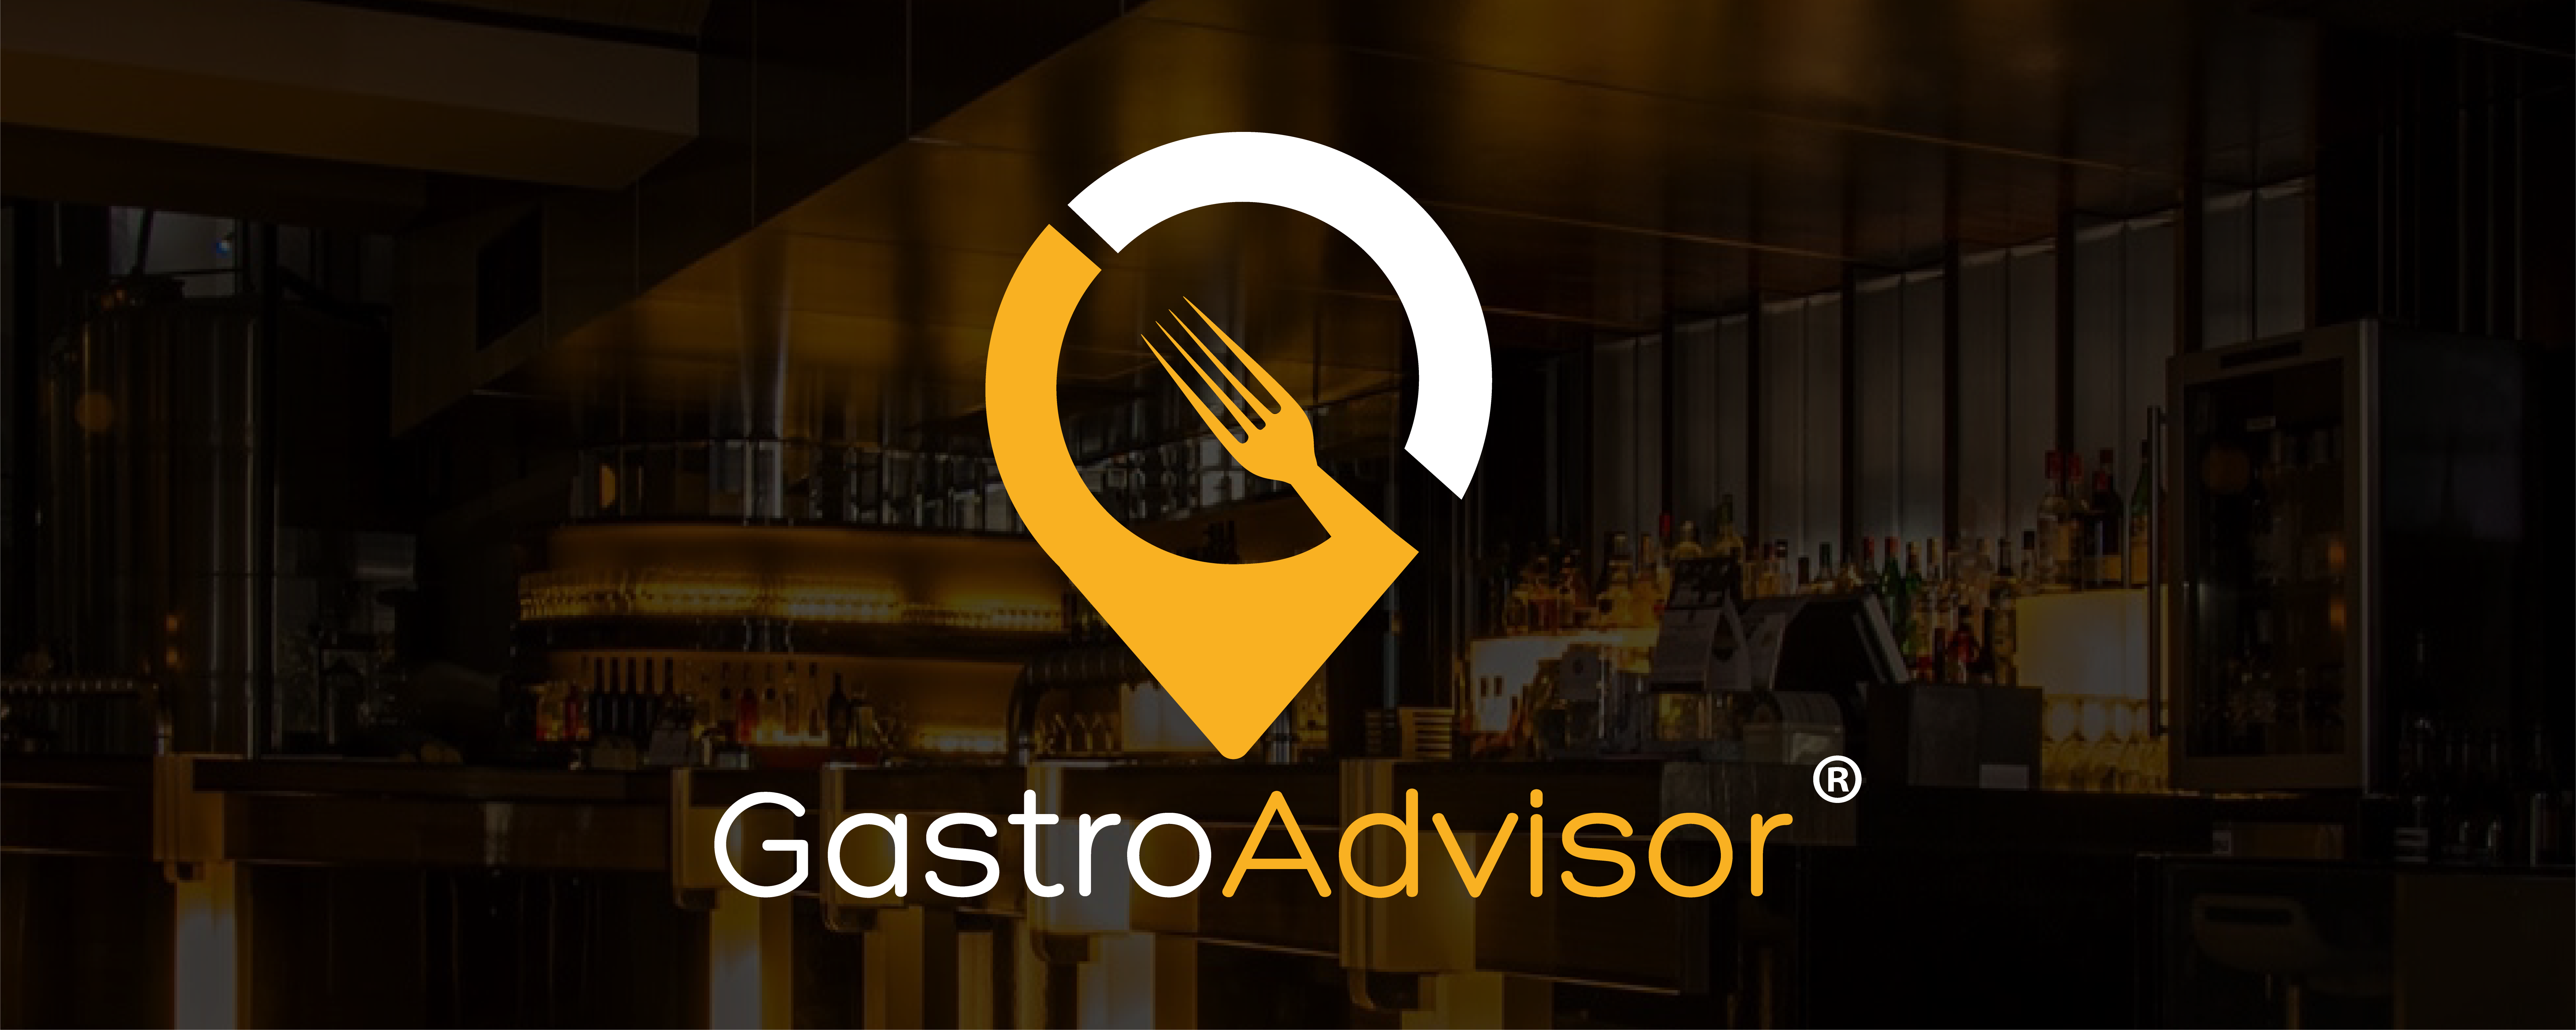 GastroAdvisor, the TripAdvisor of the crypto world shows the platform for the first time